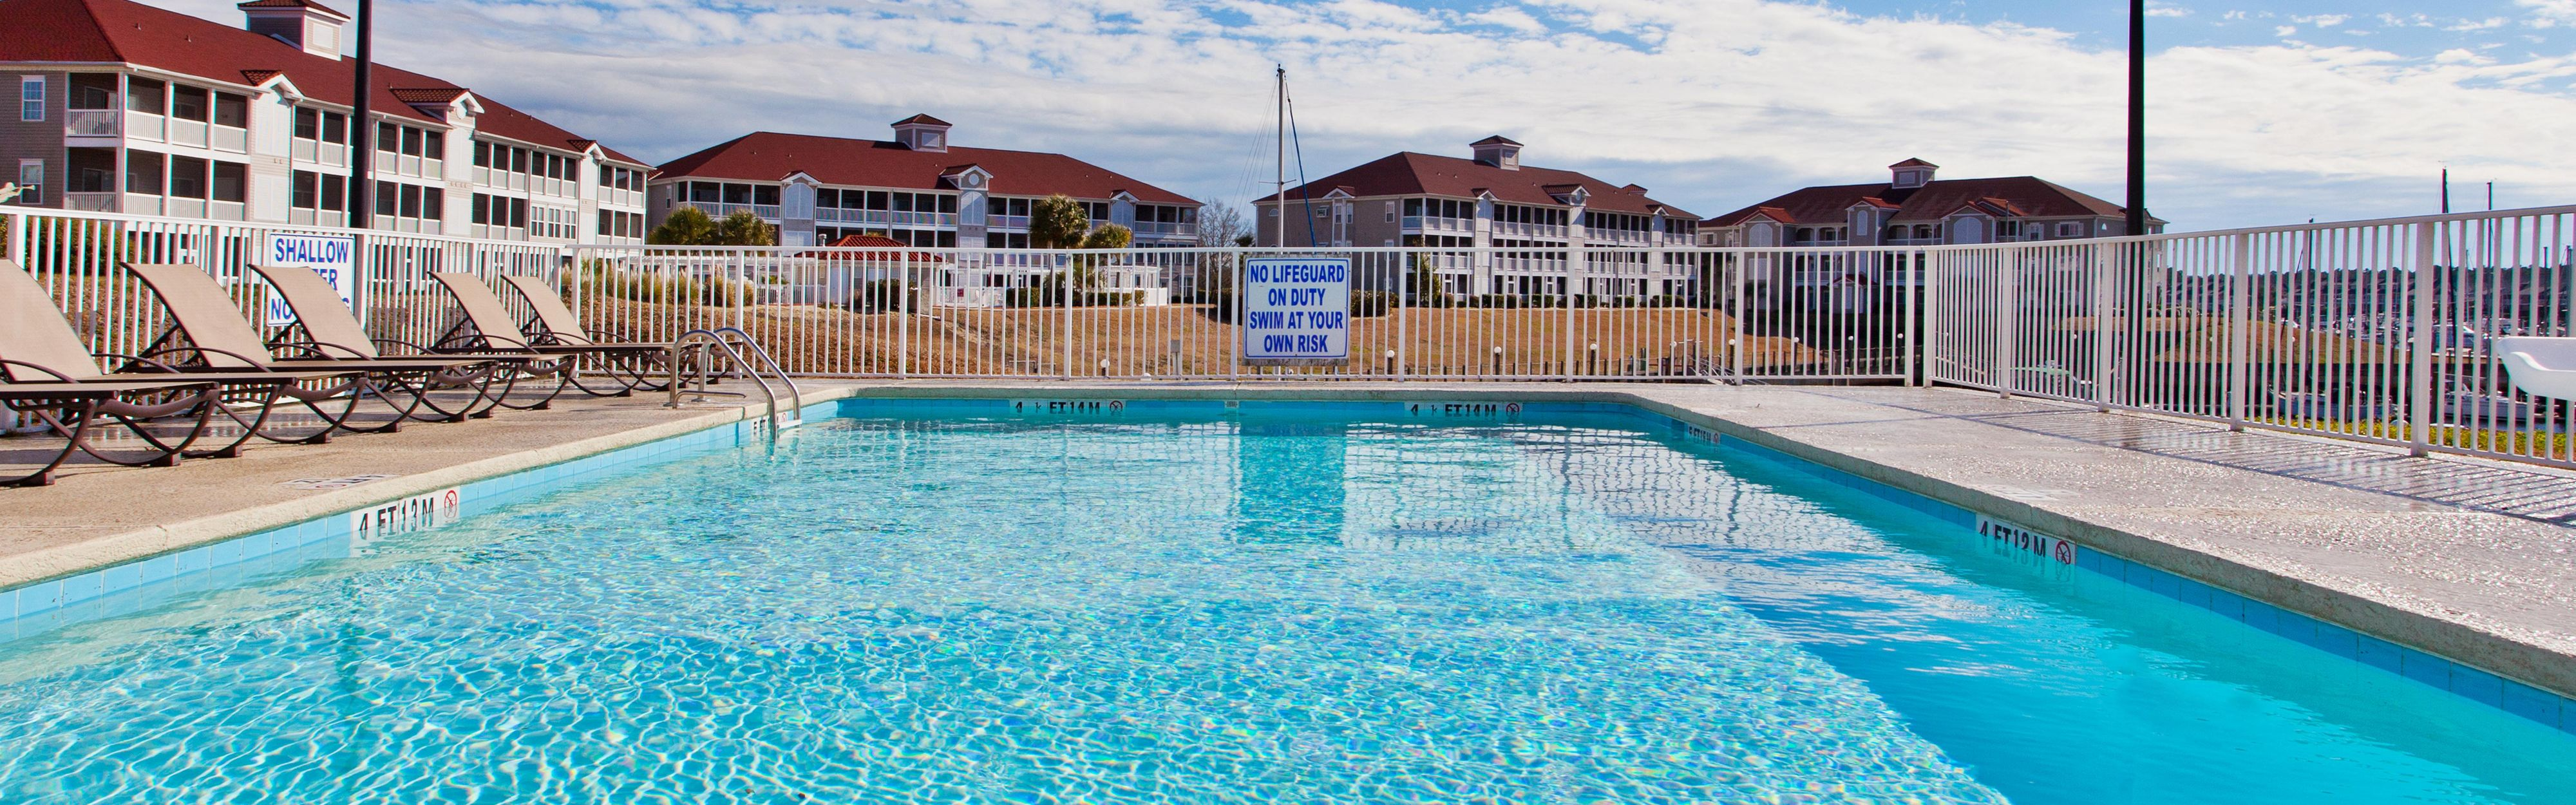 Hotels And Motels Near Myrtle Beach